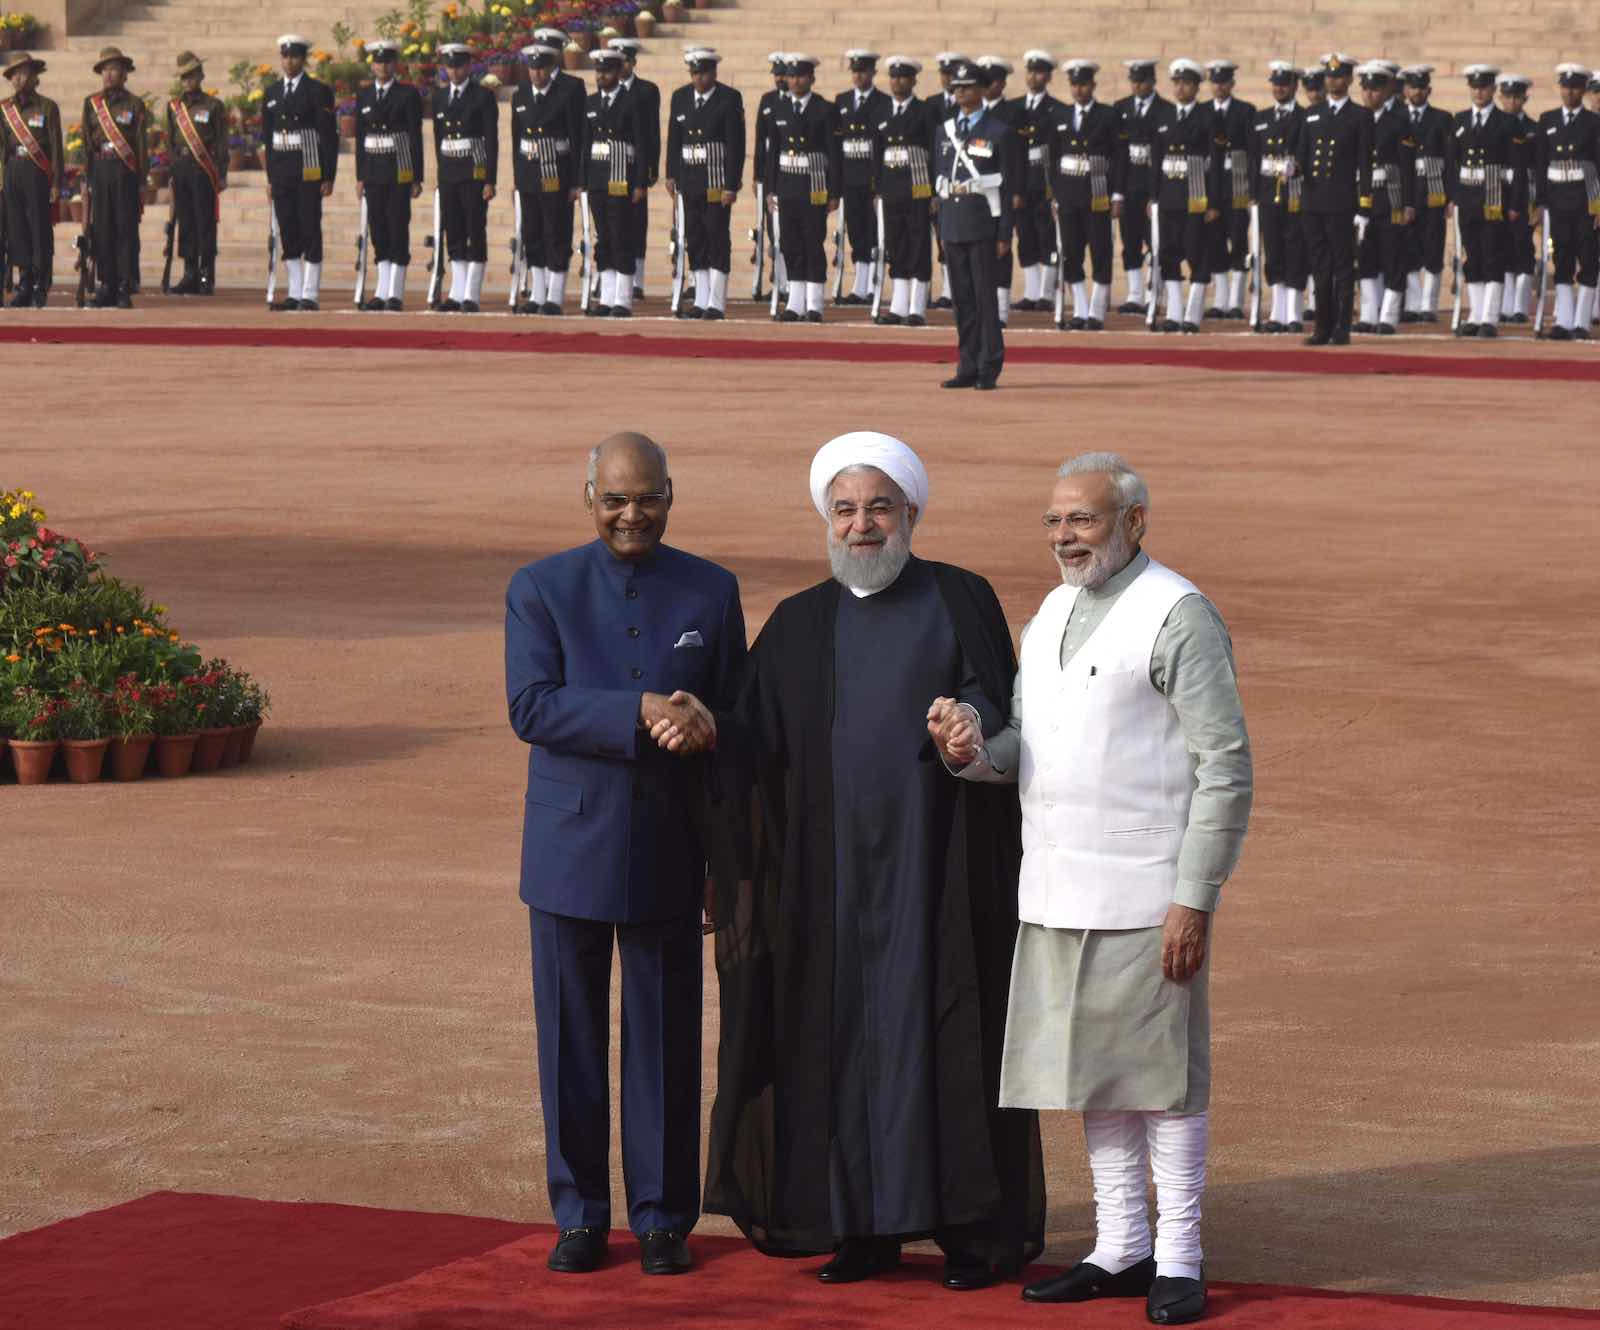 Iranian President Hassan Rouhani with Indian President Ramnath Kovind (L) and Prime Minister Narendra Modi (R) during a reception in New Delhi, February 2018 (Photo: Vipin Kumar/Hindustan Times via Getty Images)